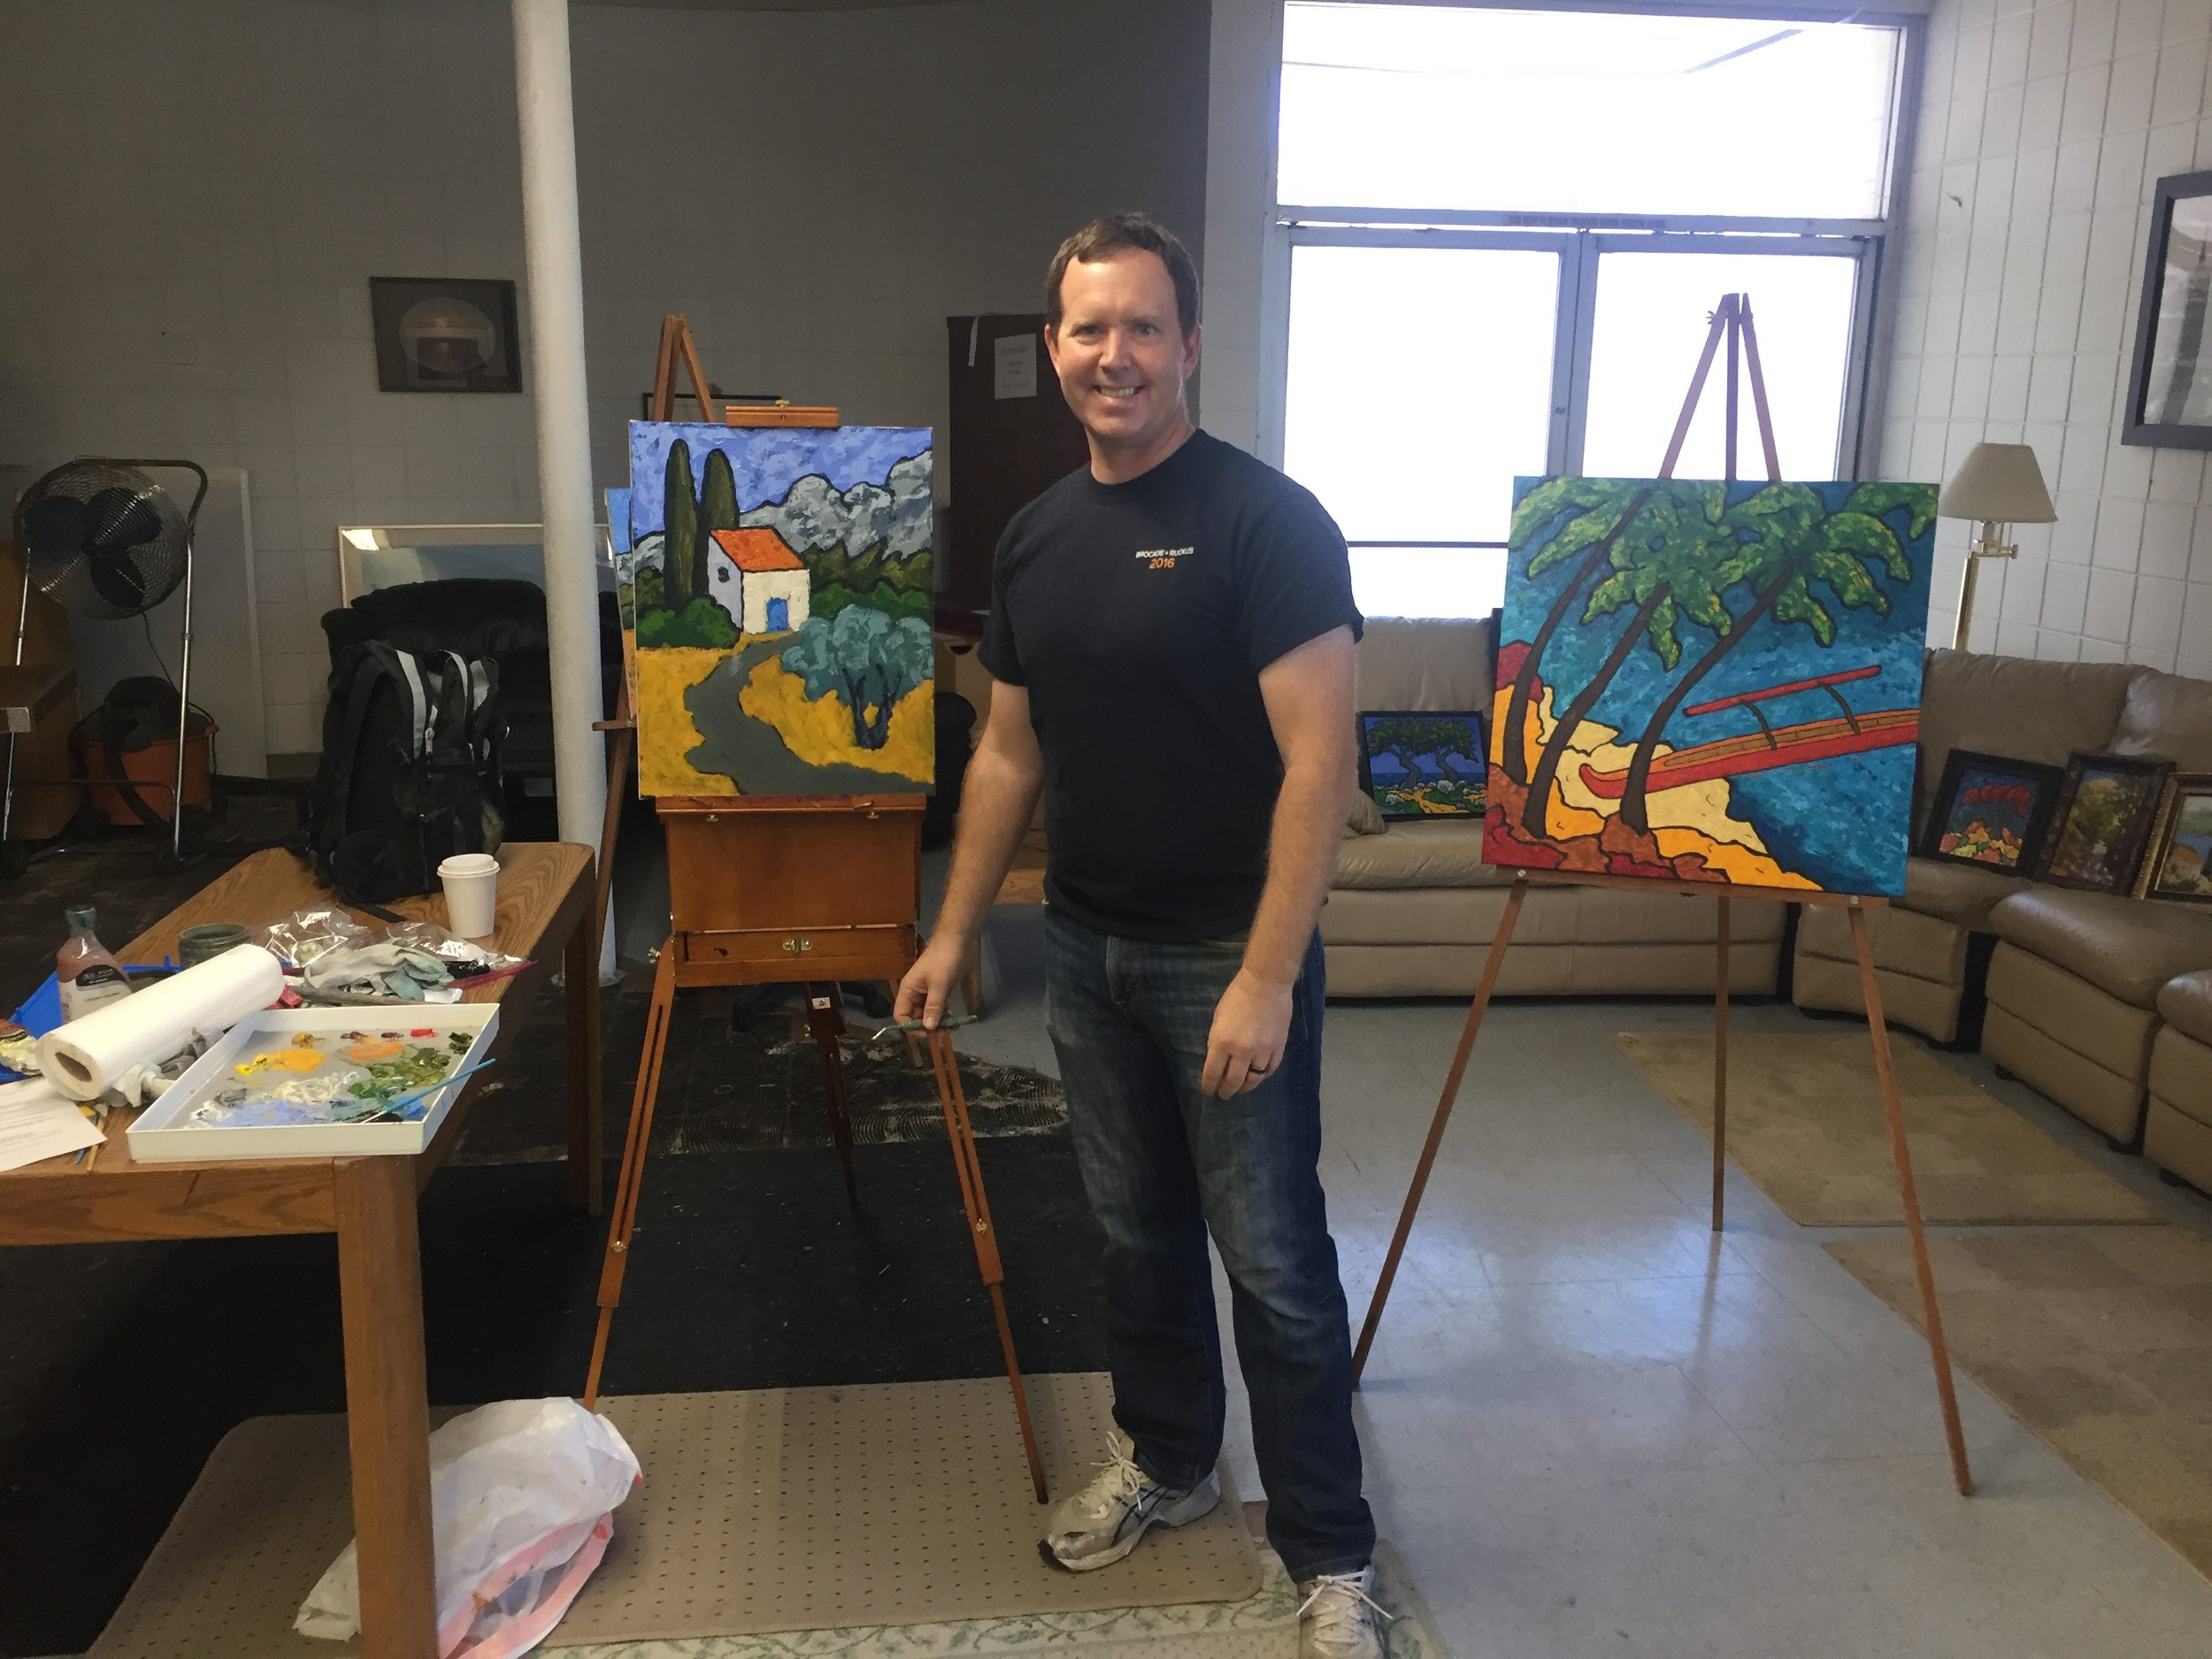 Giving a painting demonstration to the Saratoga Contemporary Artist group.